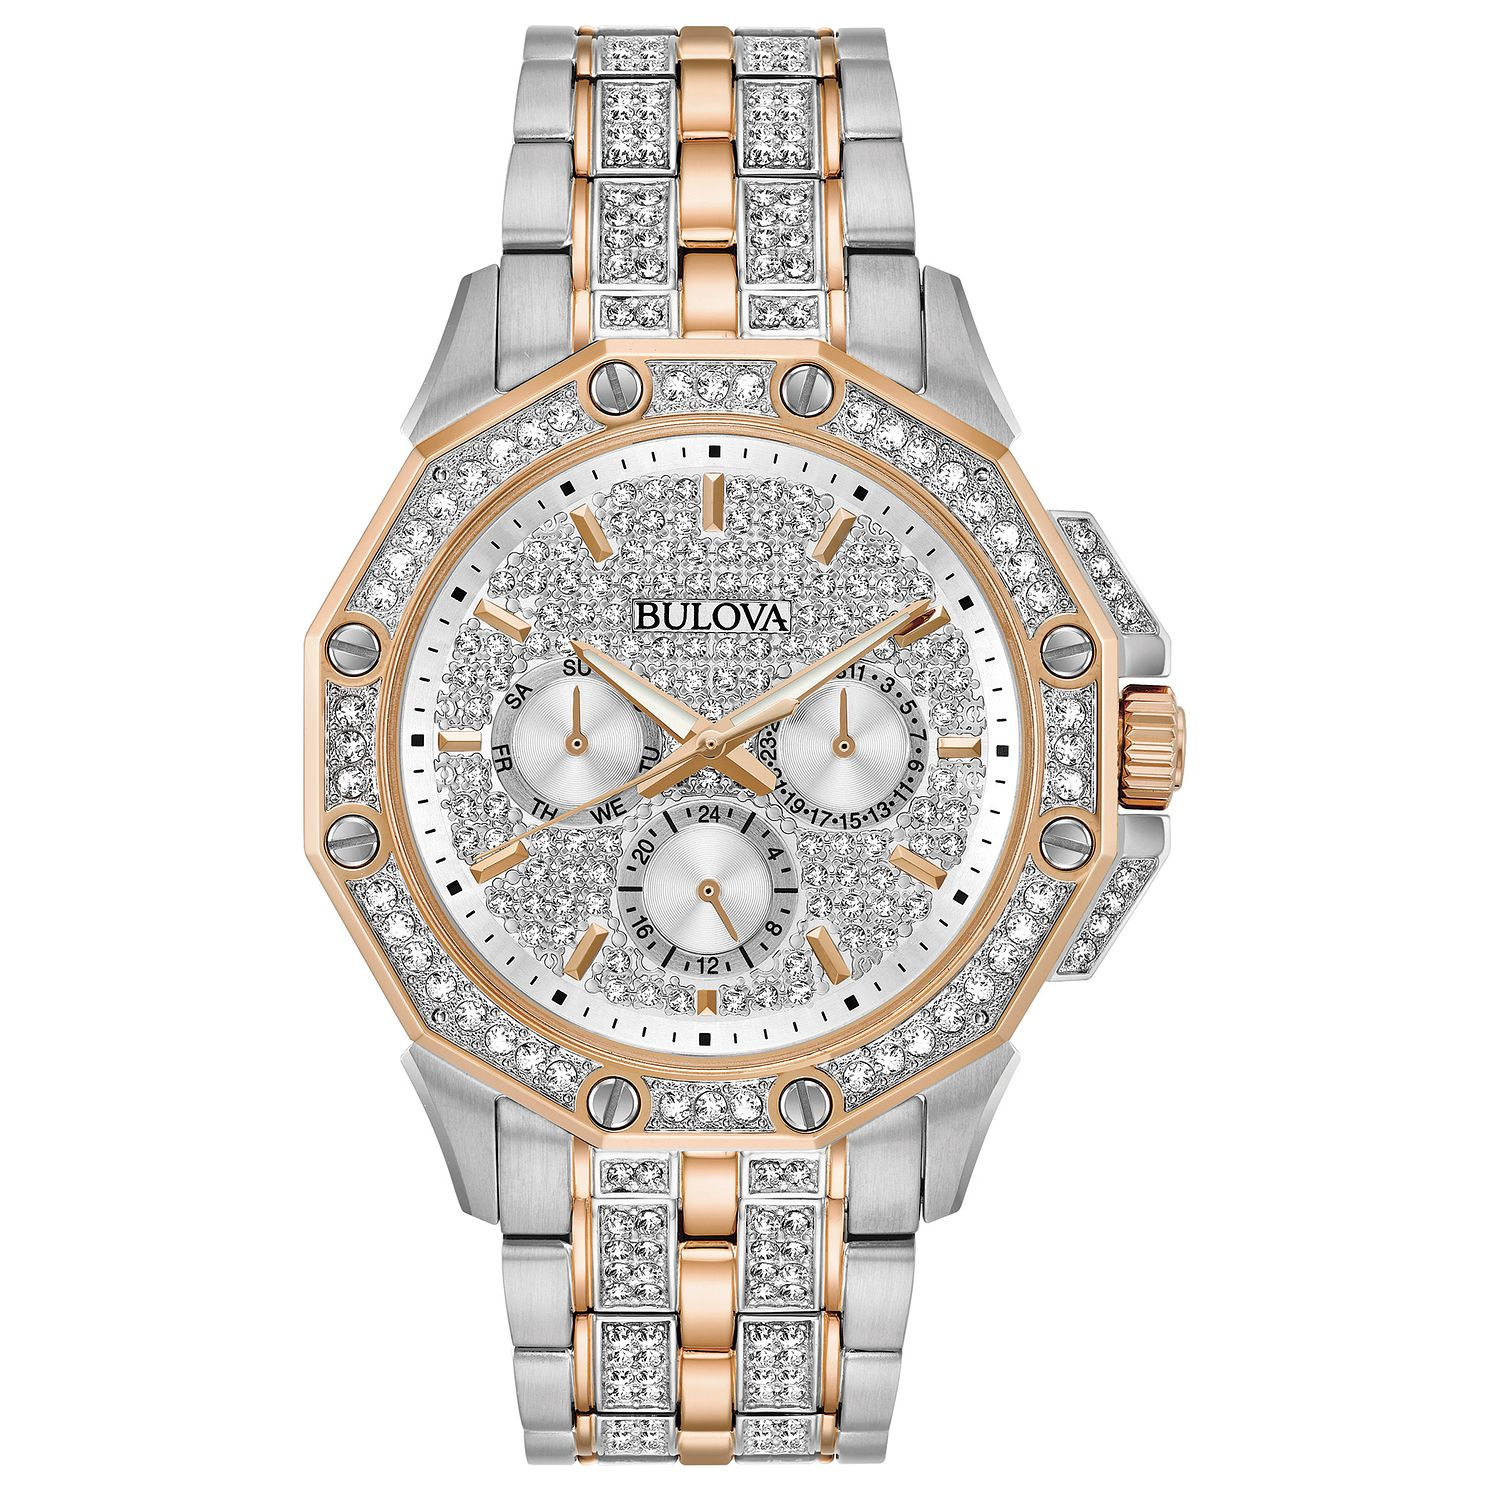 Bulova Crystal Men's Two Tone Bracelet Watch - Product number 3532461